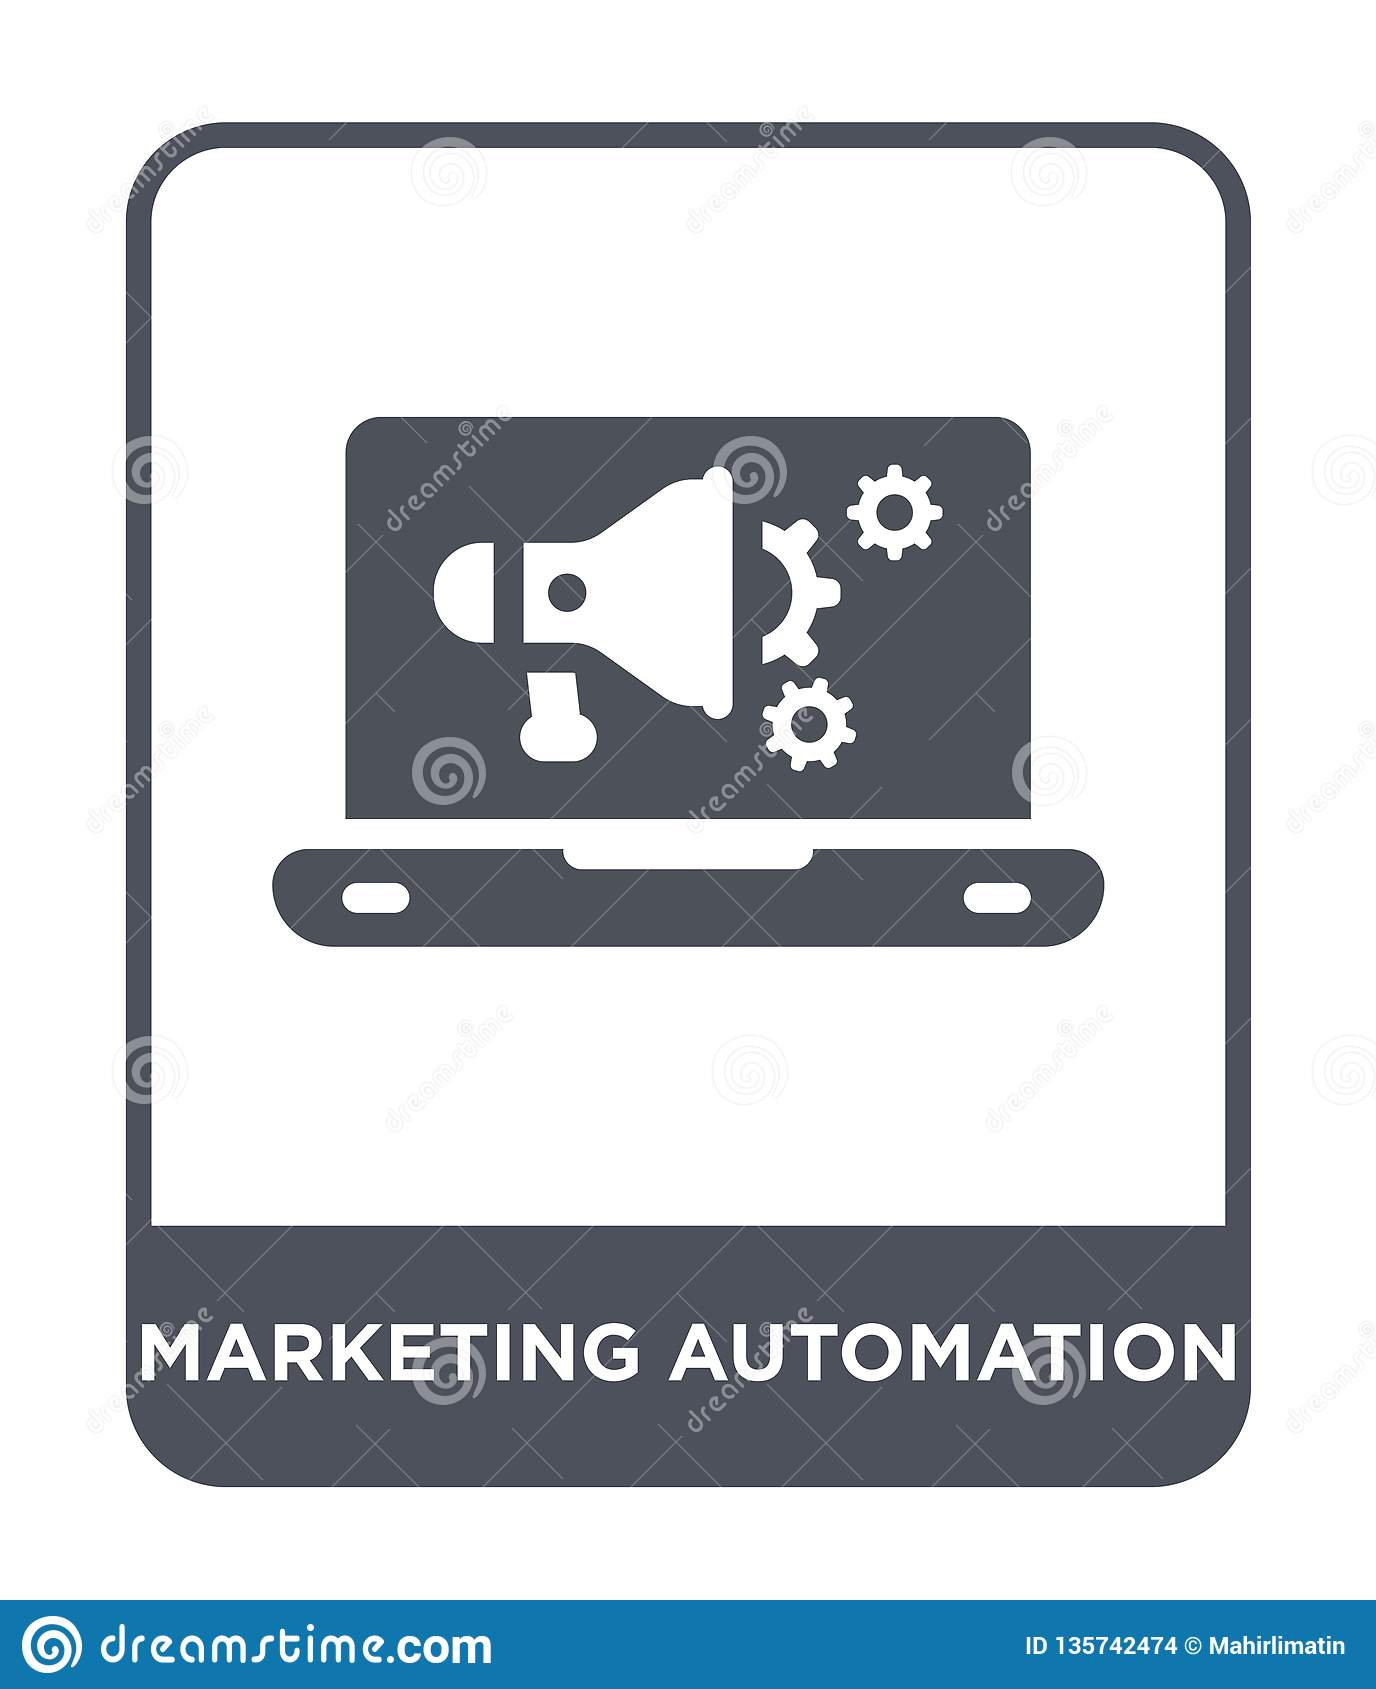 marketing automation icon in trendy design style. marketing automation icon isolated on white background. marketing automation